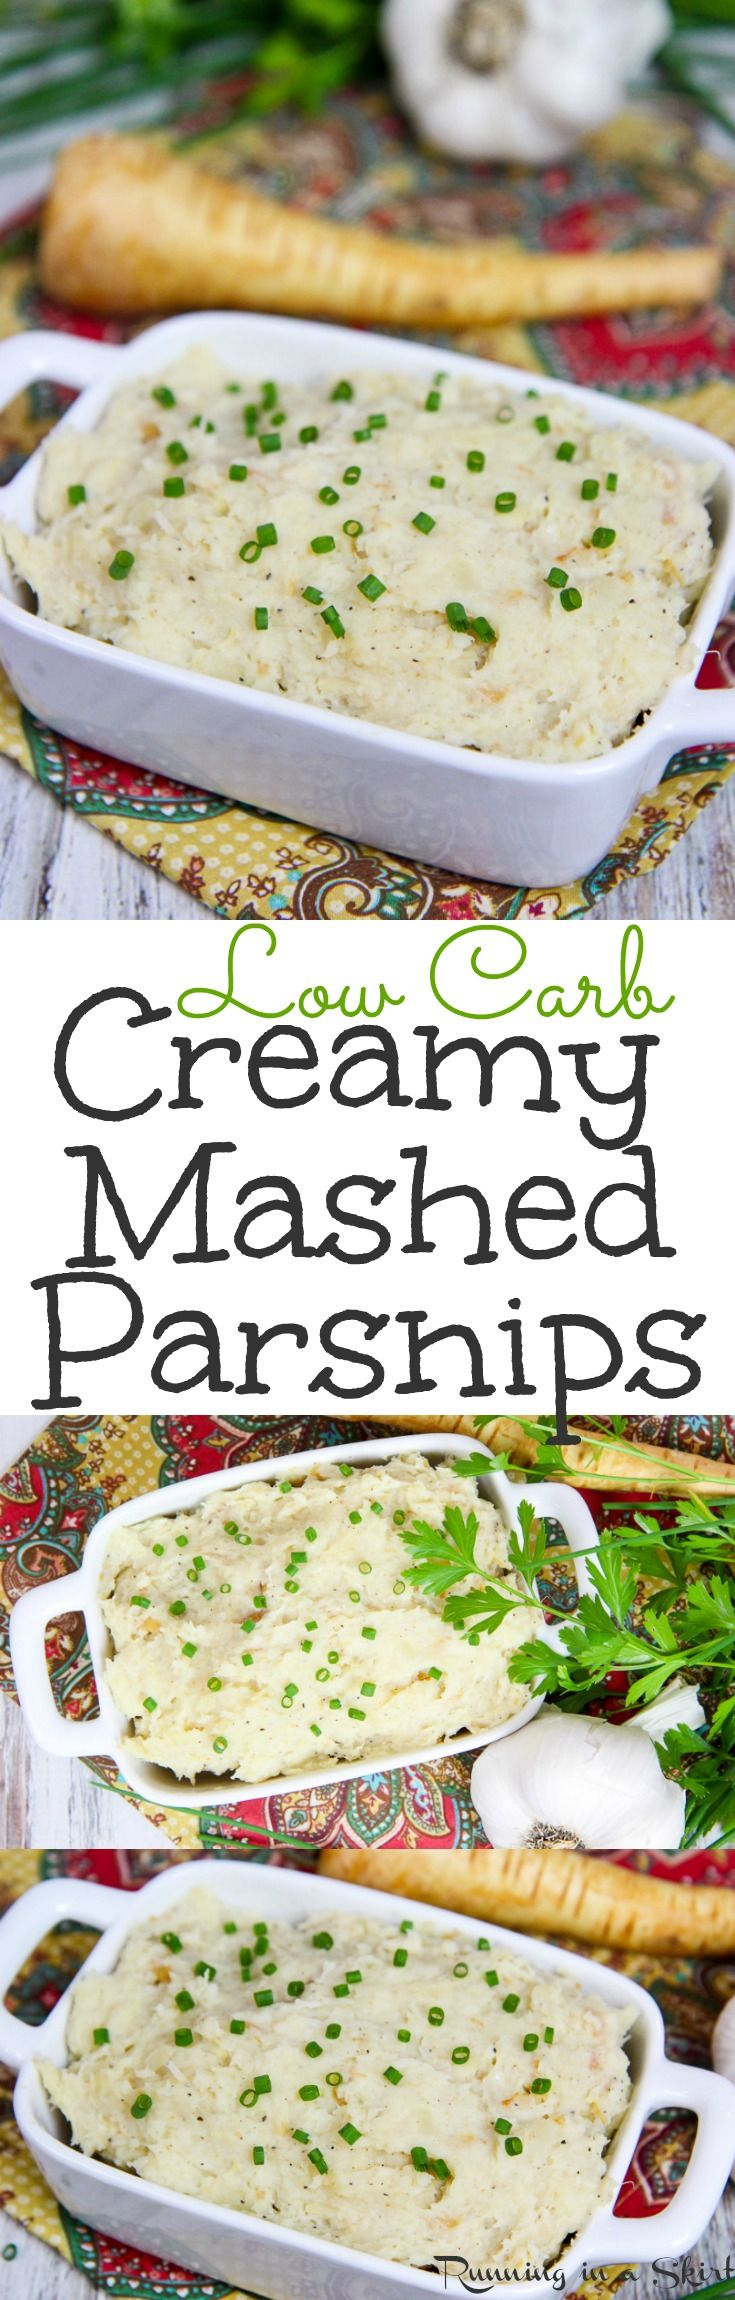 recipe: mashed parsnips recipe healthy [12]